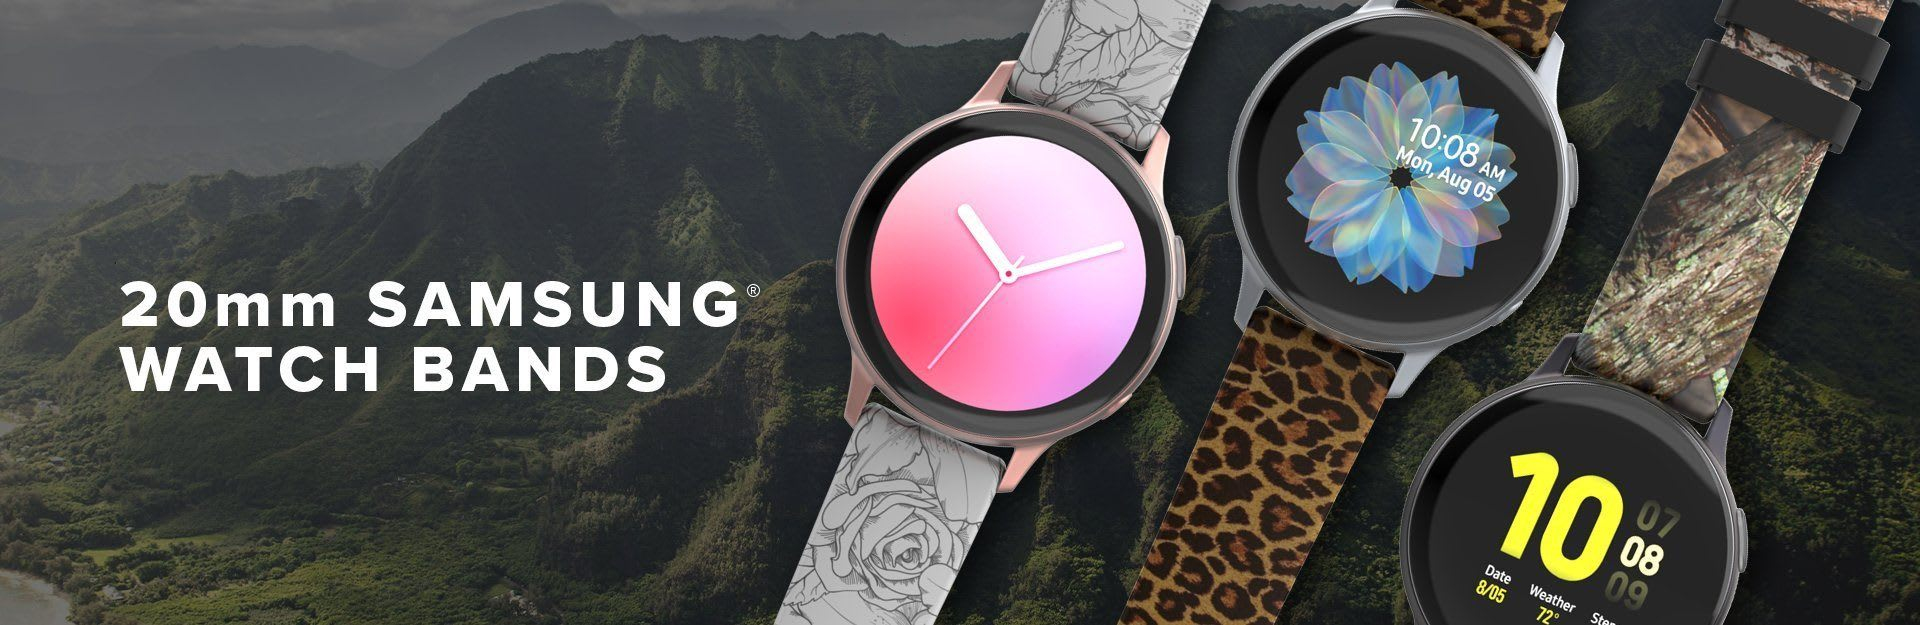 20mm Samsung Watch Bands, winter rose, leopard, and camo are featured